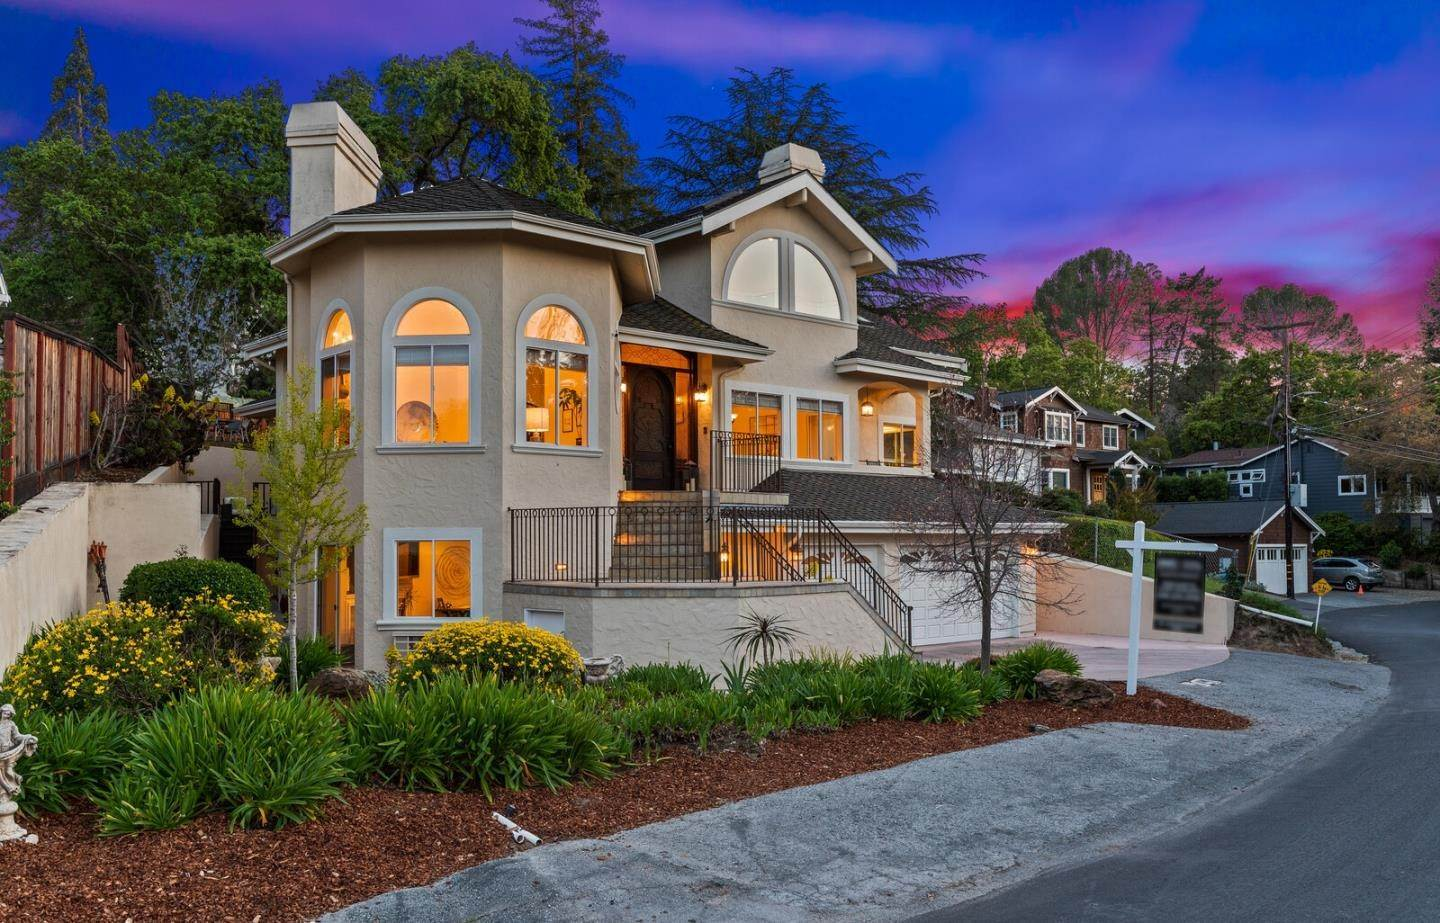 Single Family Homes for Sale at 464 Upland Road Redwood City, California 94062 United States